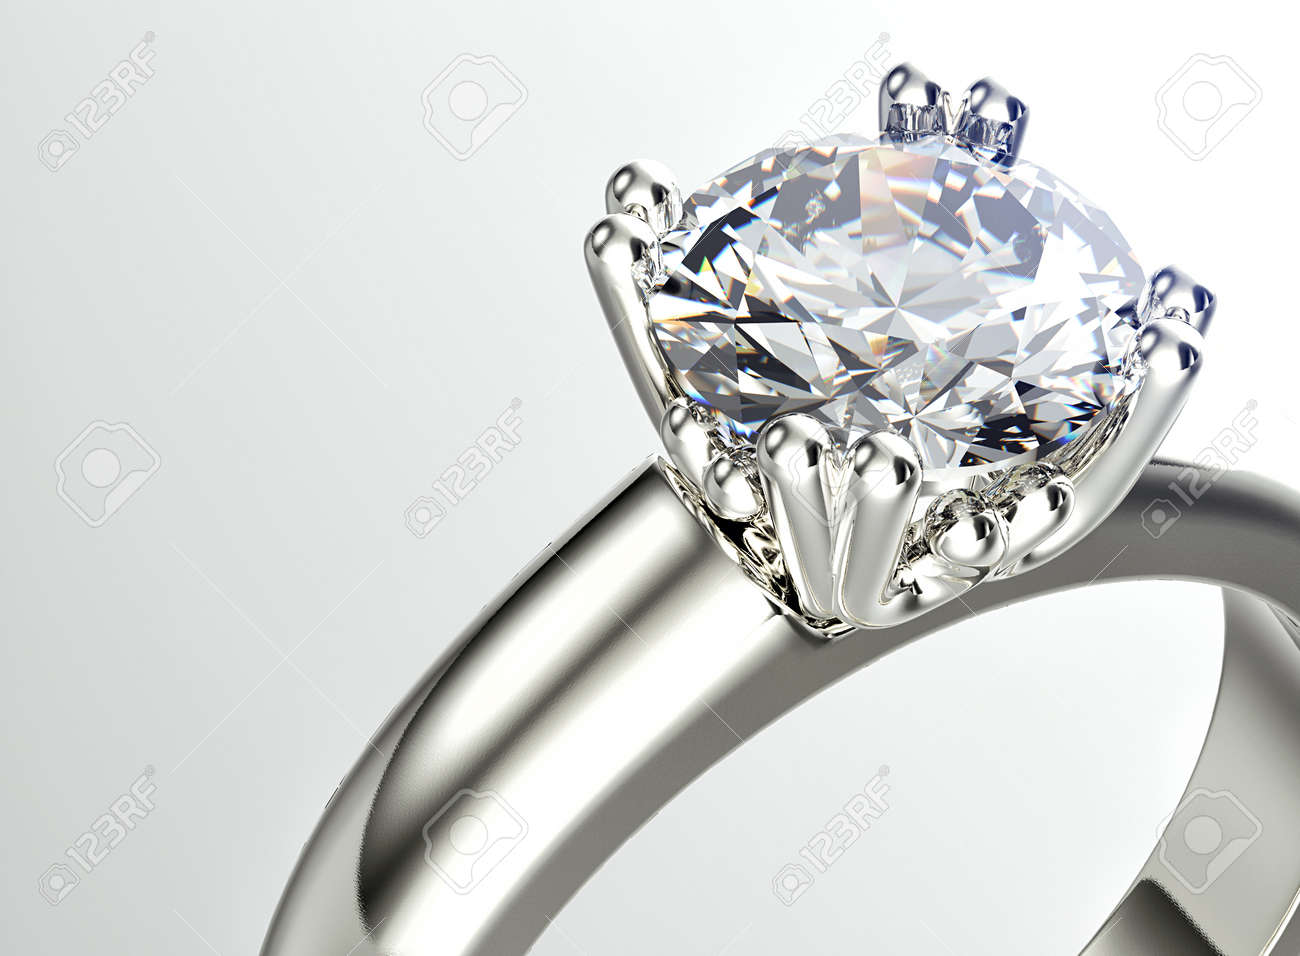 Golden Ring With Diamond. Jewelry Background Stock Photo, Picture ...